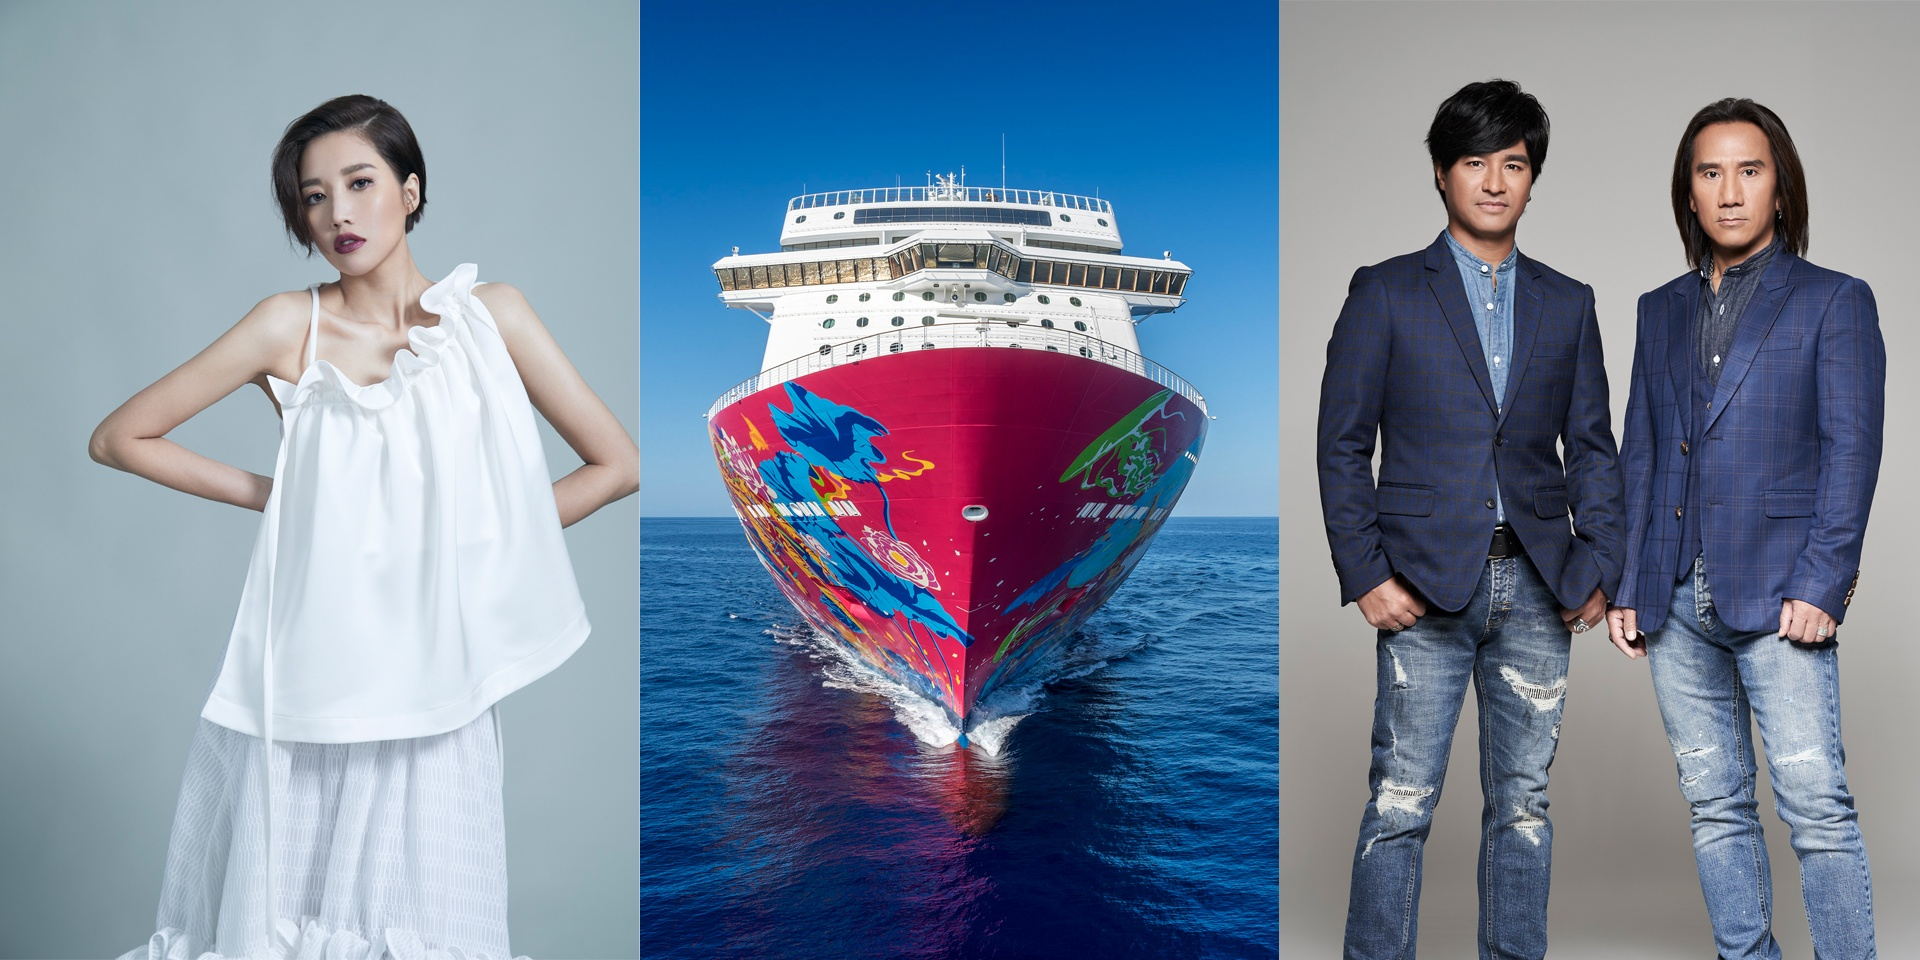 A-Lin and Power Station to hold concerts on board Genting Dream cruises